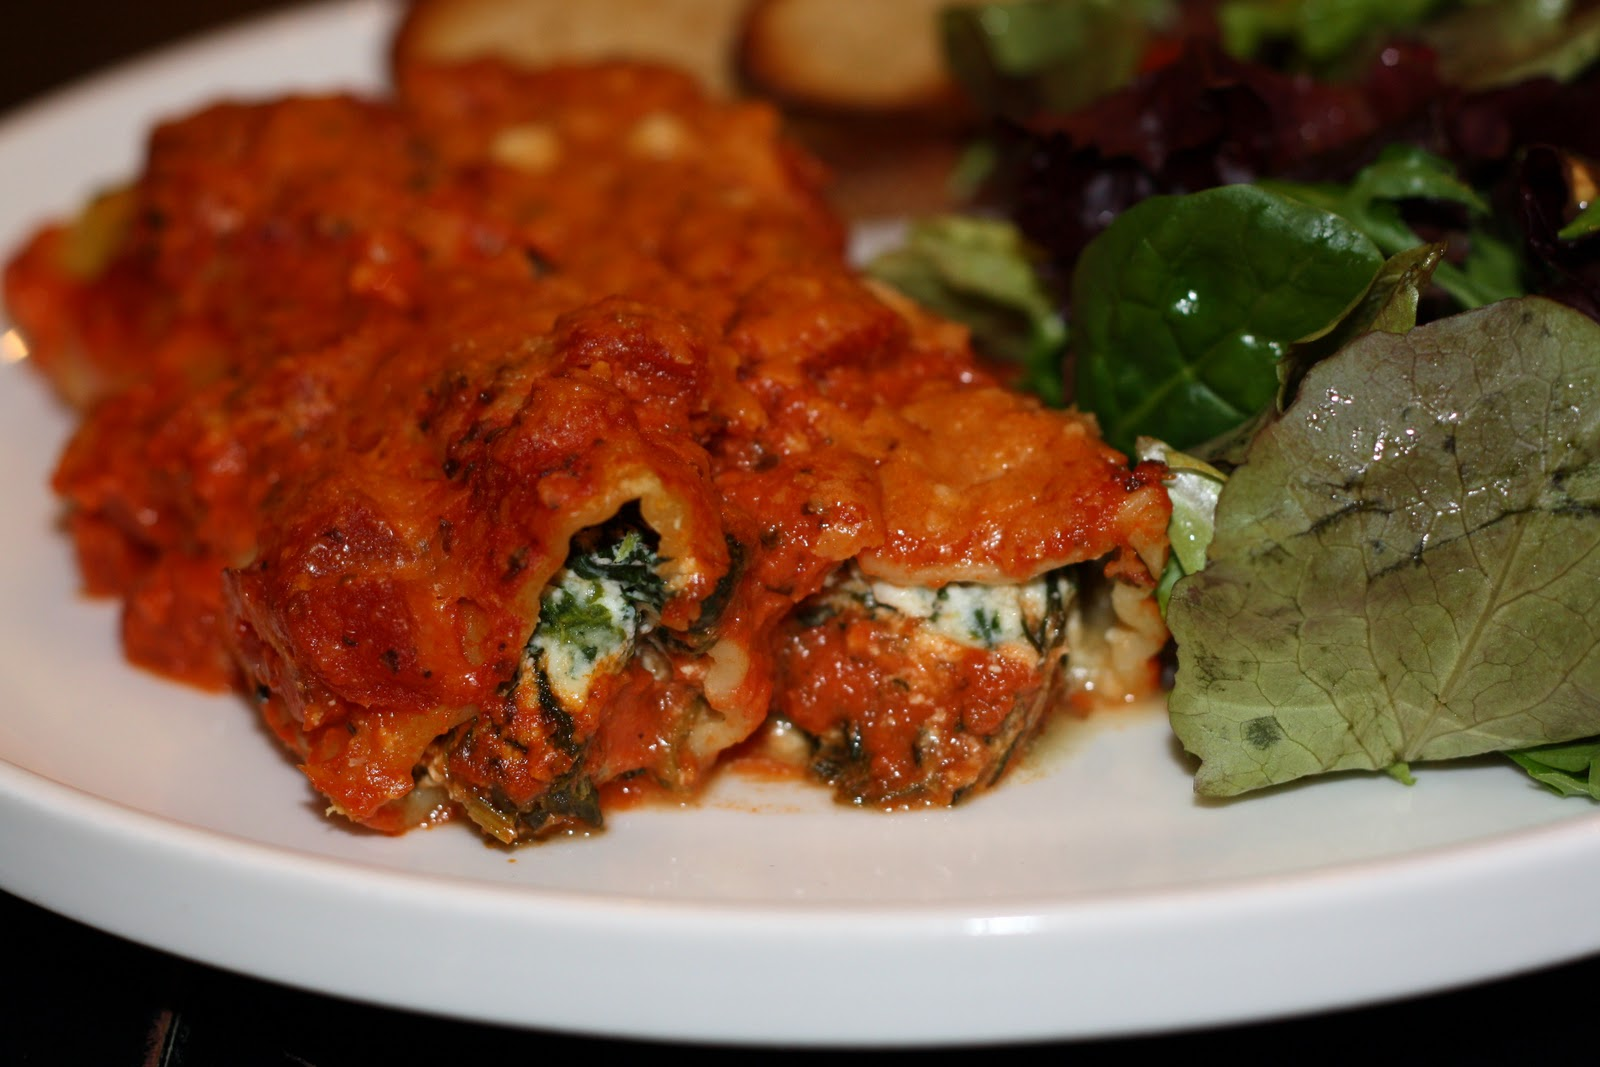 ... for dinner?: spinach manicotti in creamy tomato sauce... 65 minutes